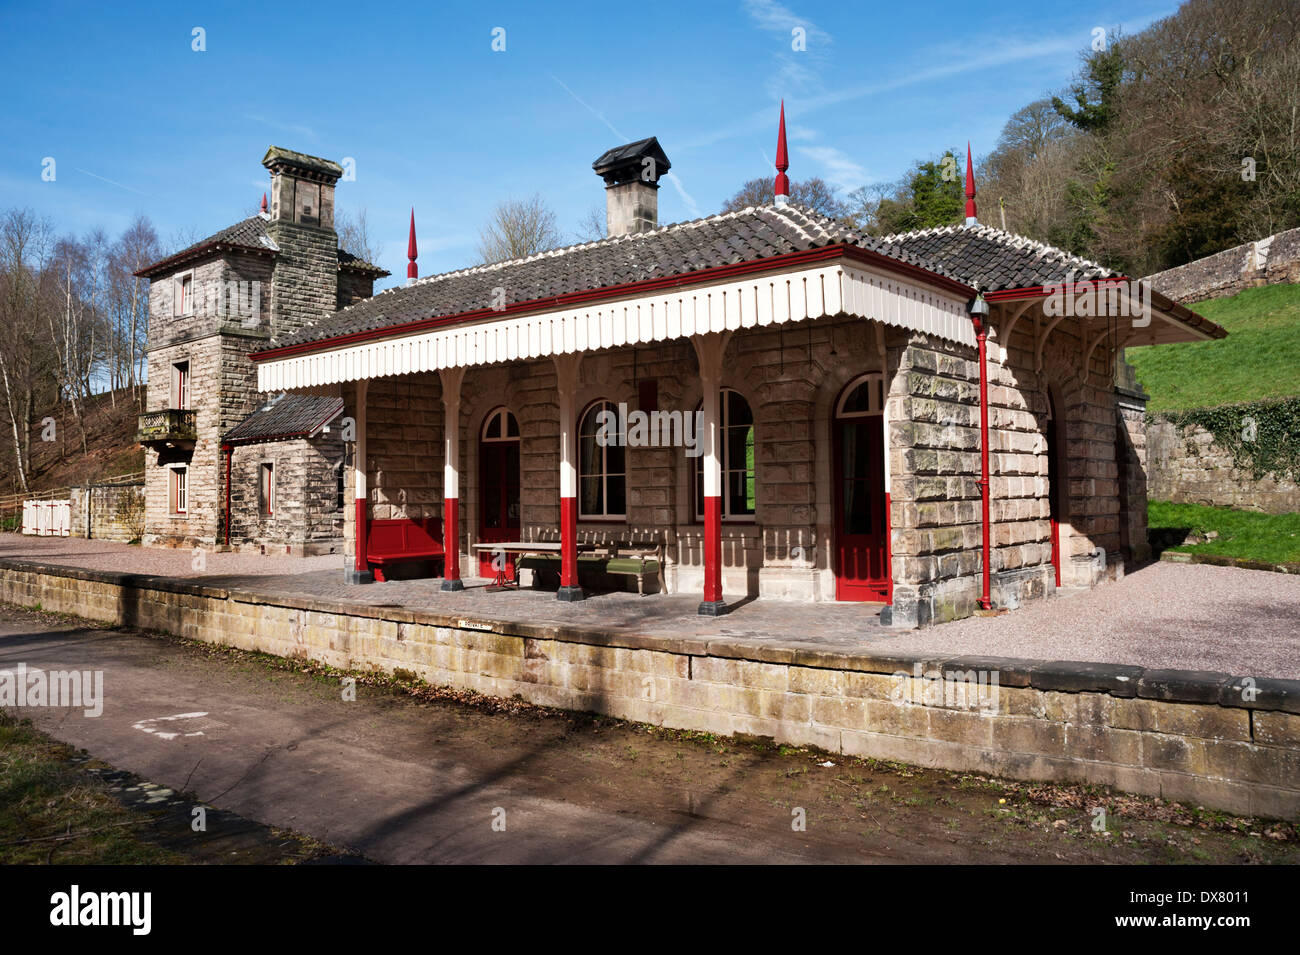 The former Alton Towers Station, Churnet Valley, Staffordshire, UK. Now a holiday let. Railway line is  a cycle / walking trail. - Stock Image